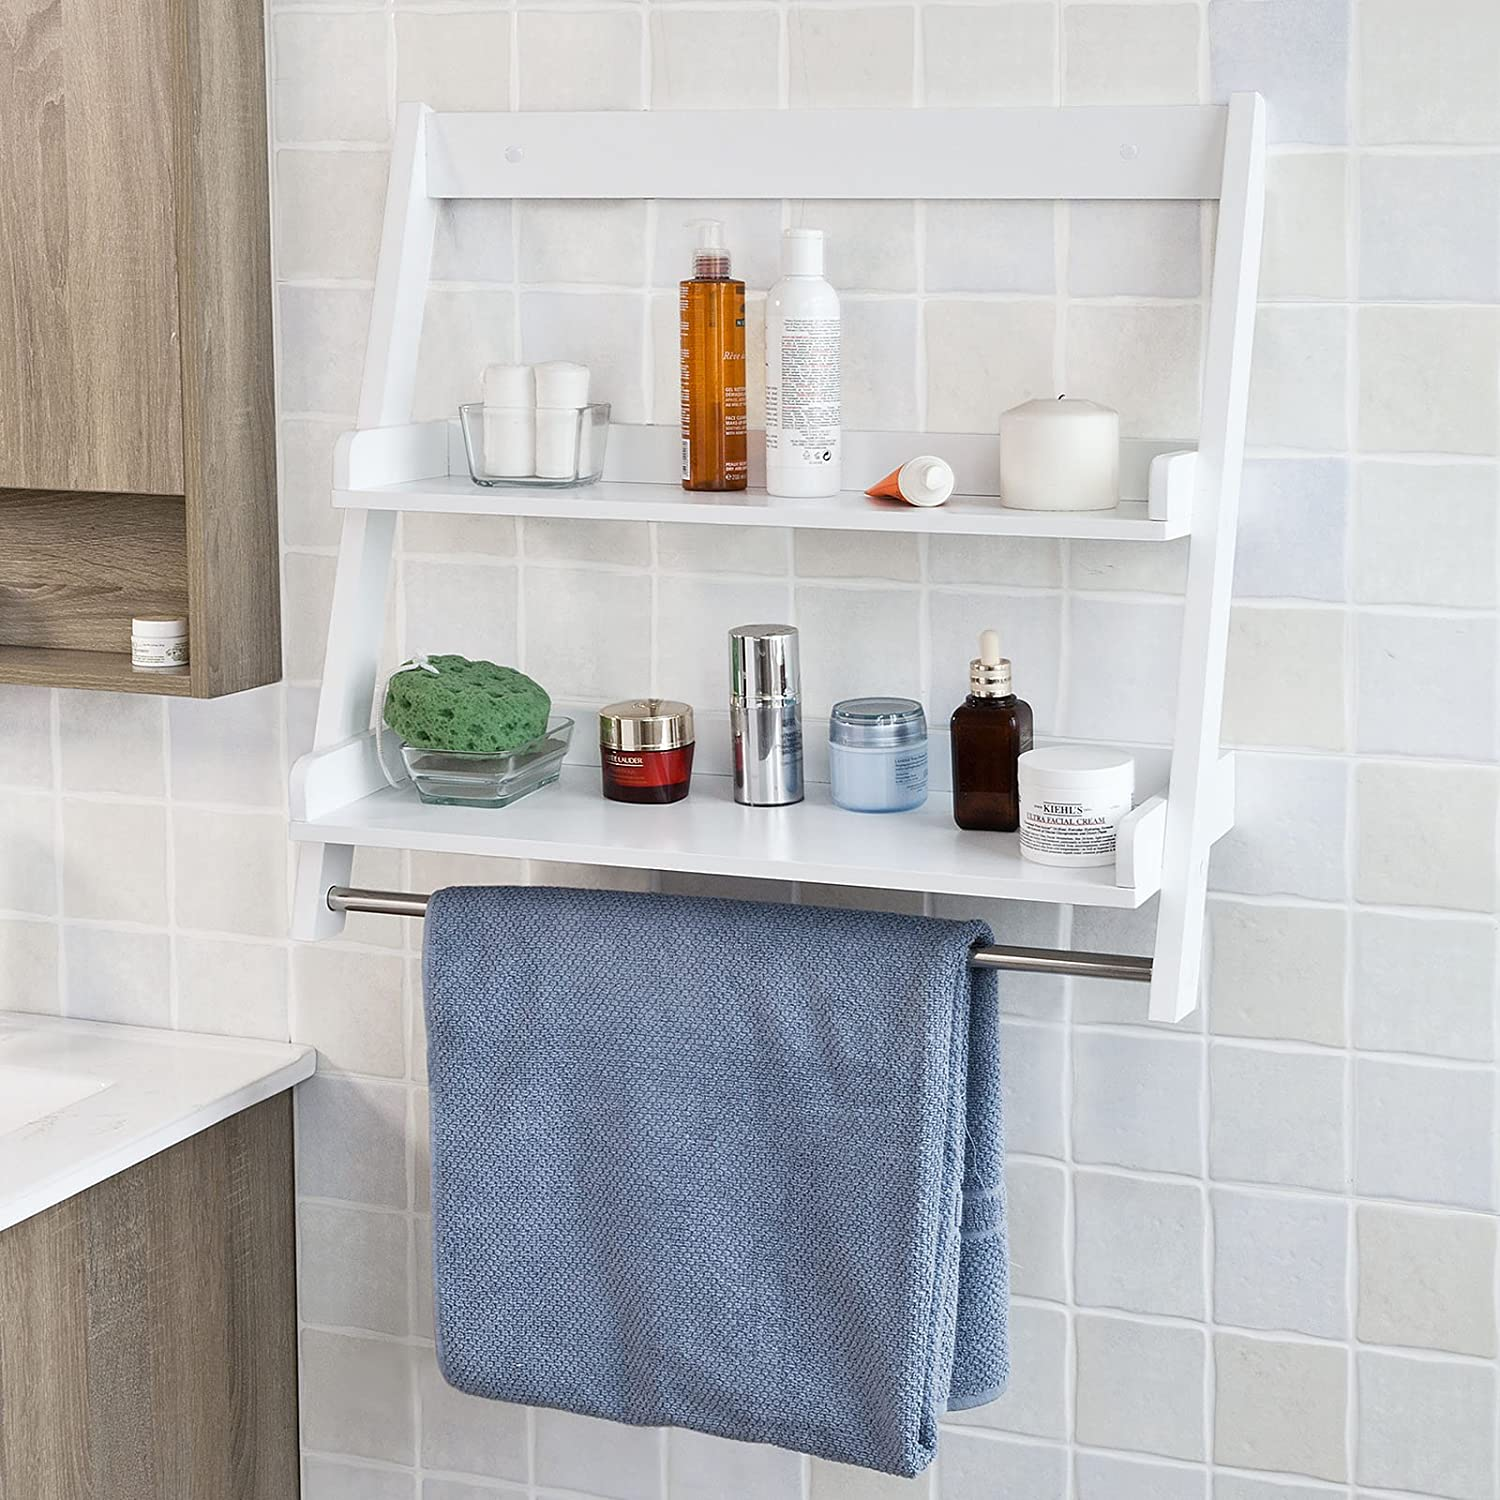 Amazon.com: SoBuy FRG117-W, White Wall Mounted Shelf, Storage ...